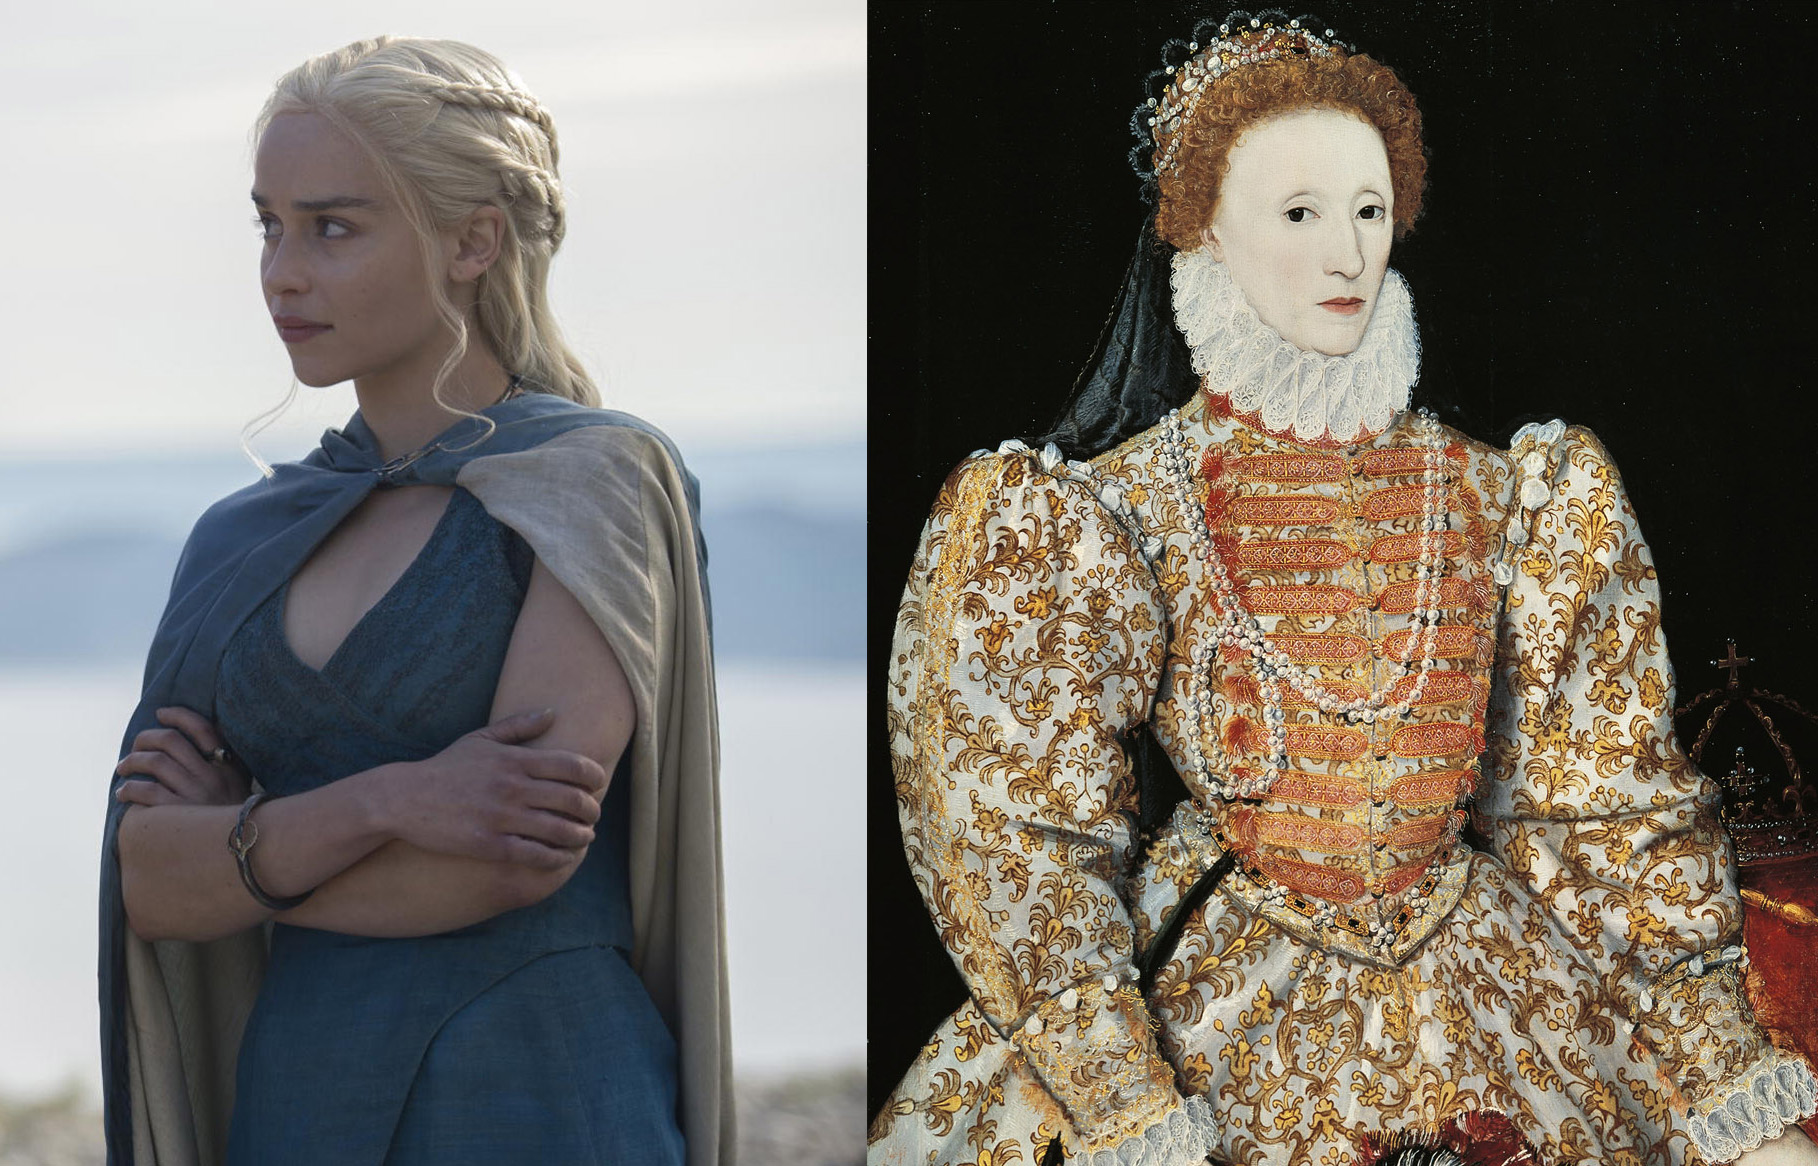 From Left: Khaleesi and Queen Elizabeth I.